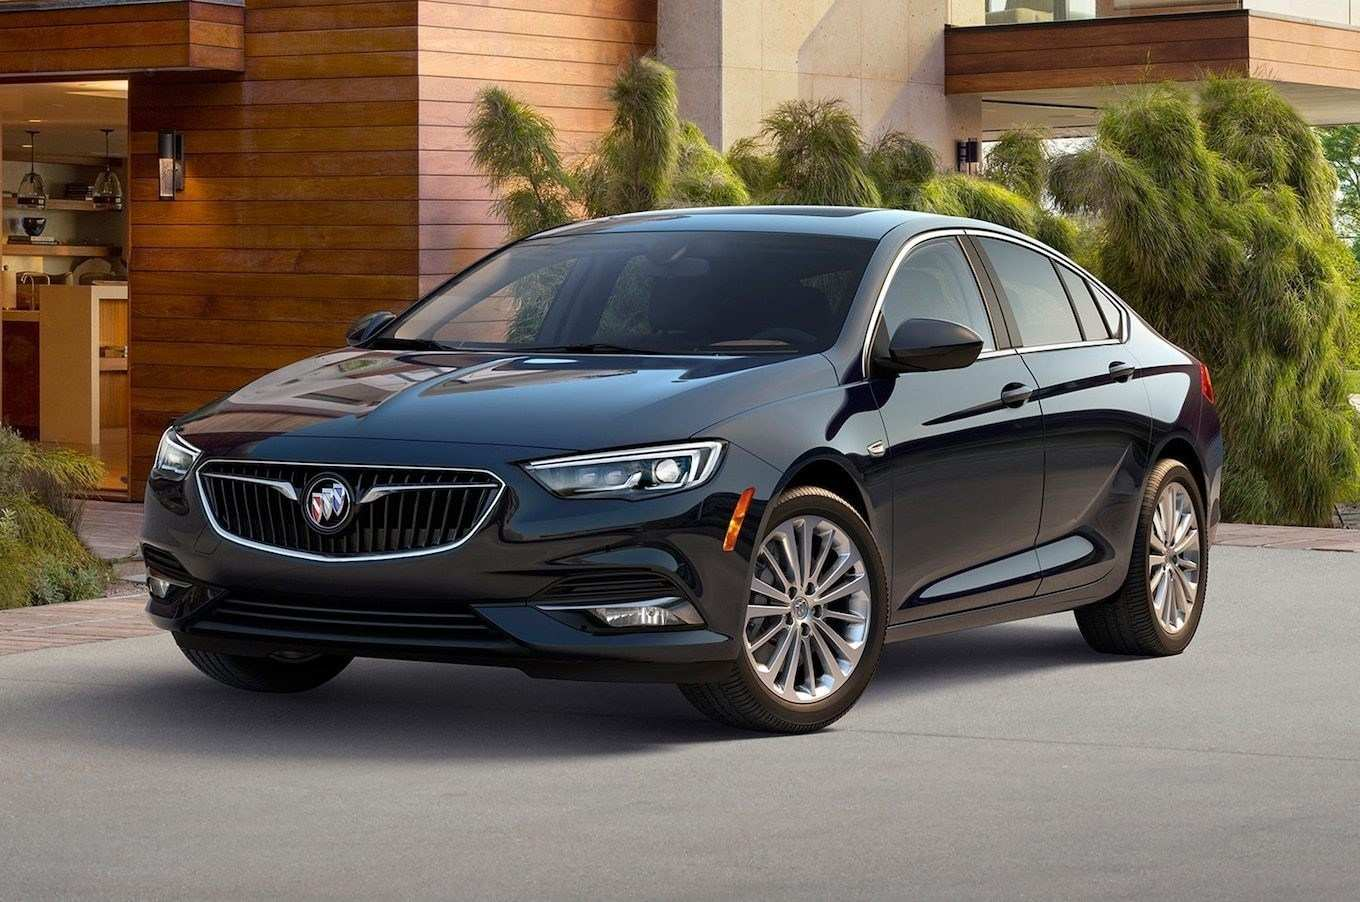 23 New 2019 Buick Grand National Release Date